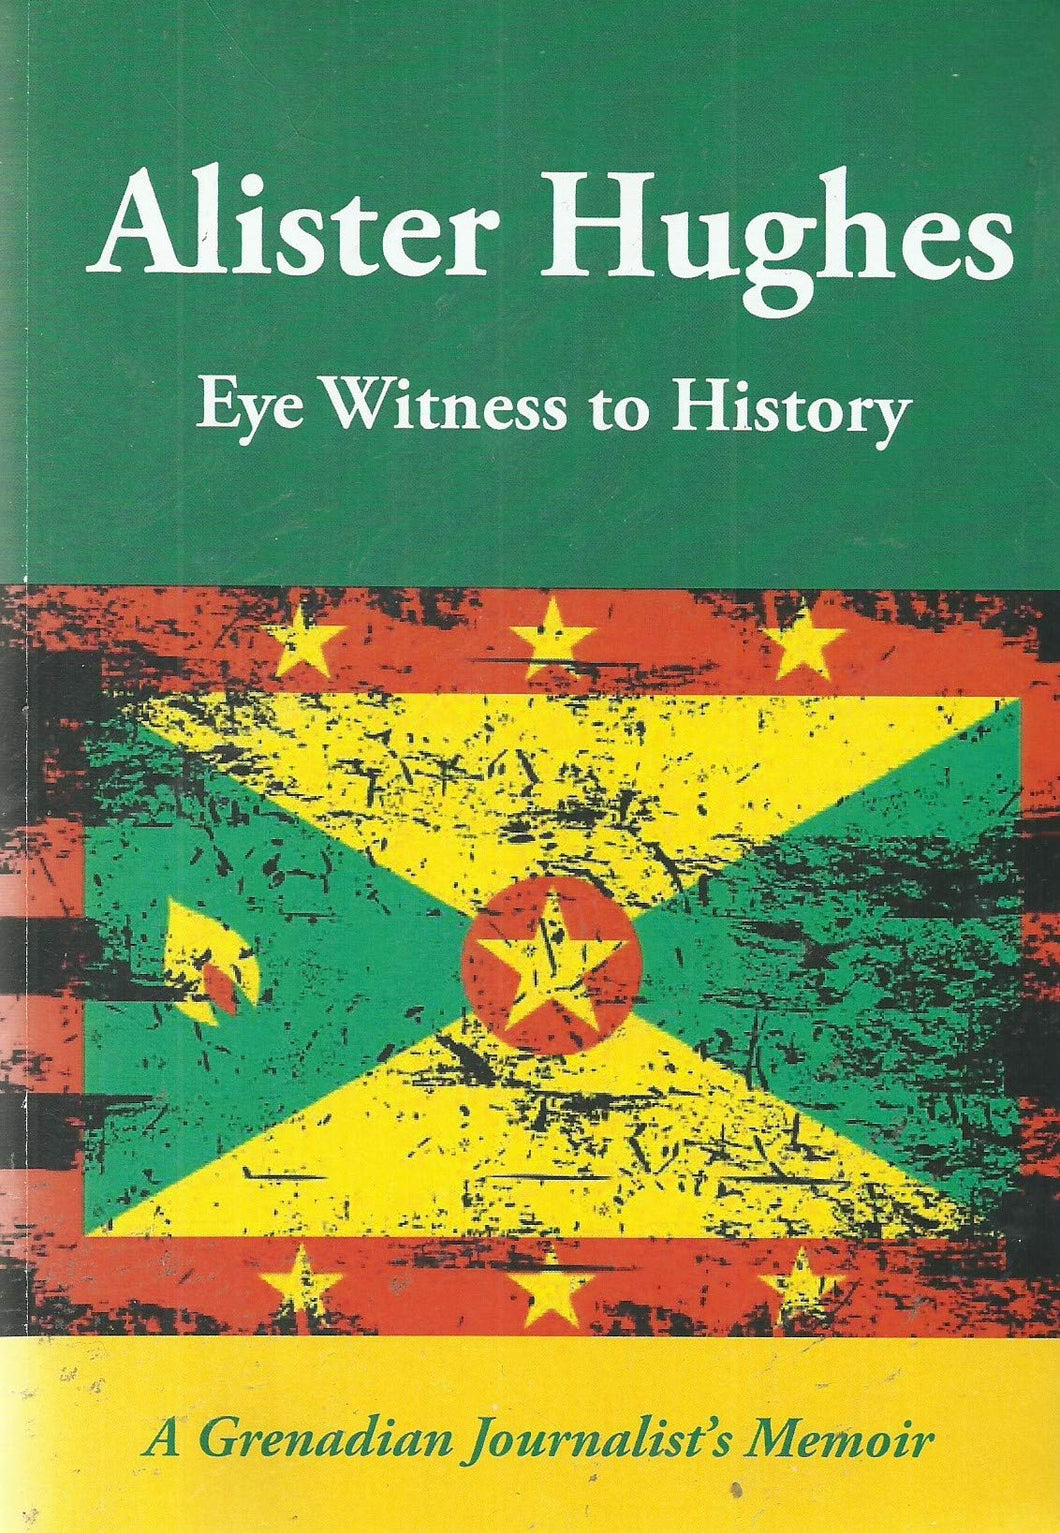 Alister Hughes: Eye Witness to History - A Grenadian Journalist's Memoir (Eyewitness to History)